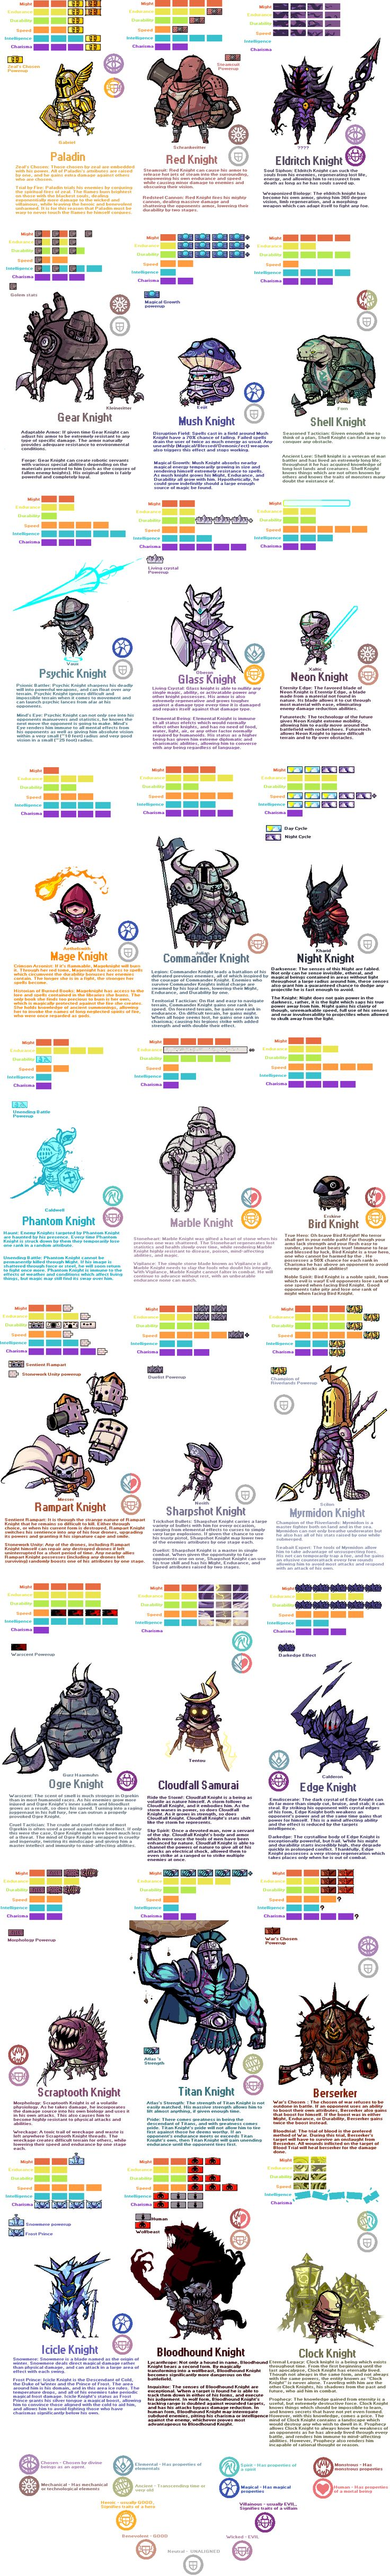 knightsv4 by shwigityshwonshweideviantartcom on deviantart - Game Design Ideas